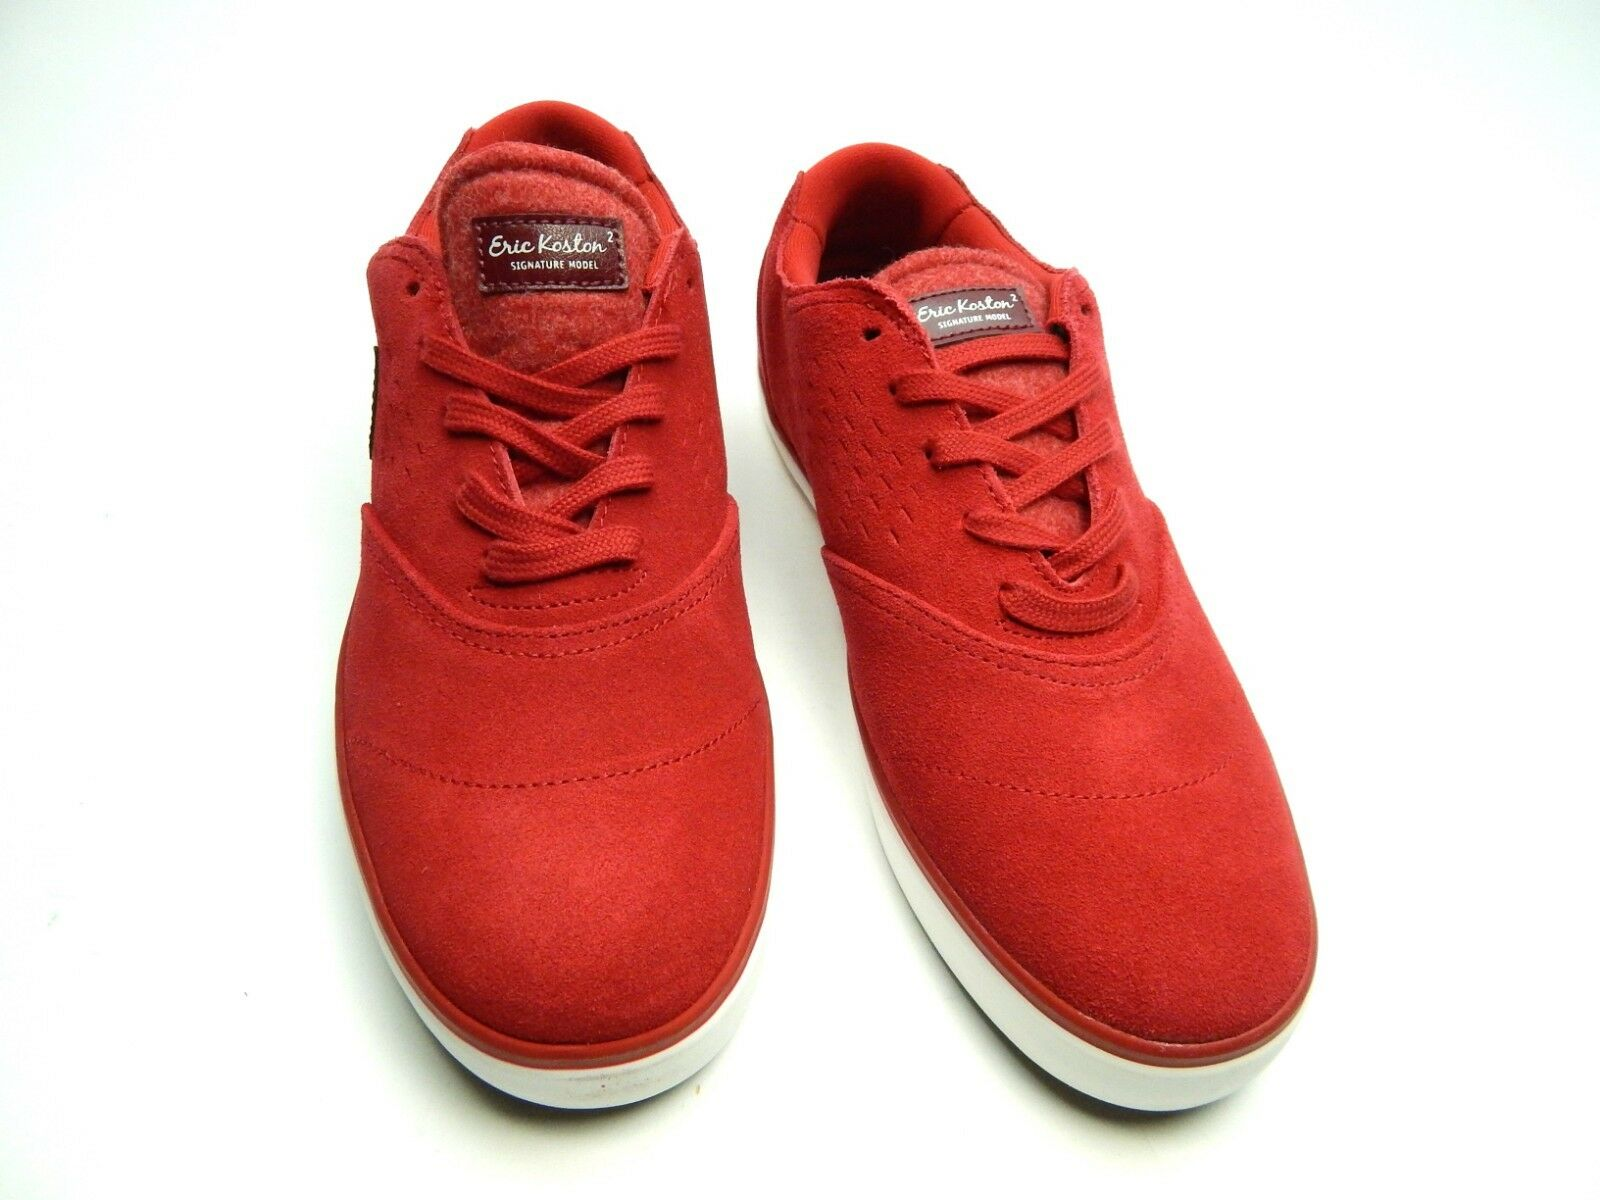 27dda661b6fe ... NIKE Men s Zoom Erick Erick Erick Koston 2 LR Gym Red Summit white  641868 661 Men